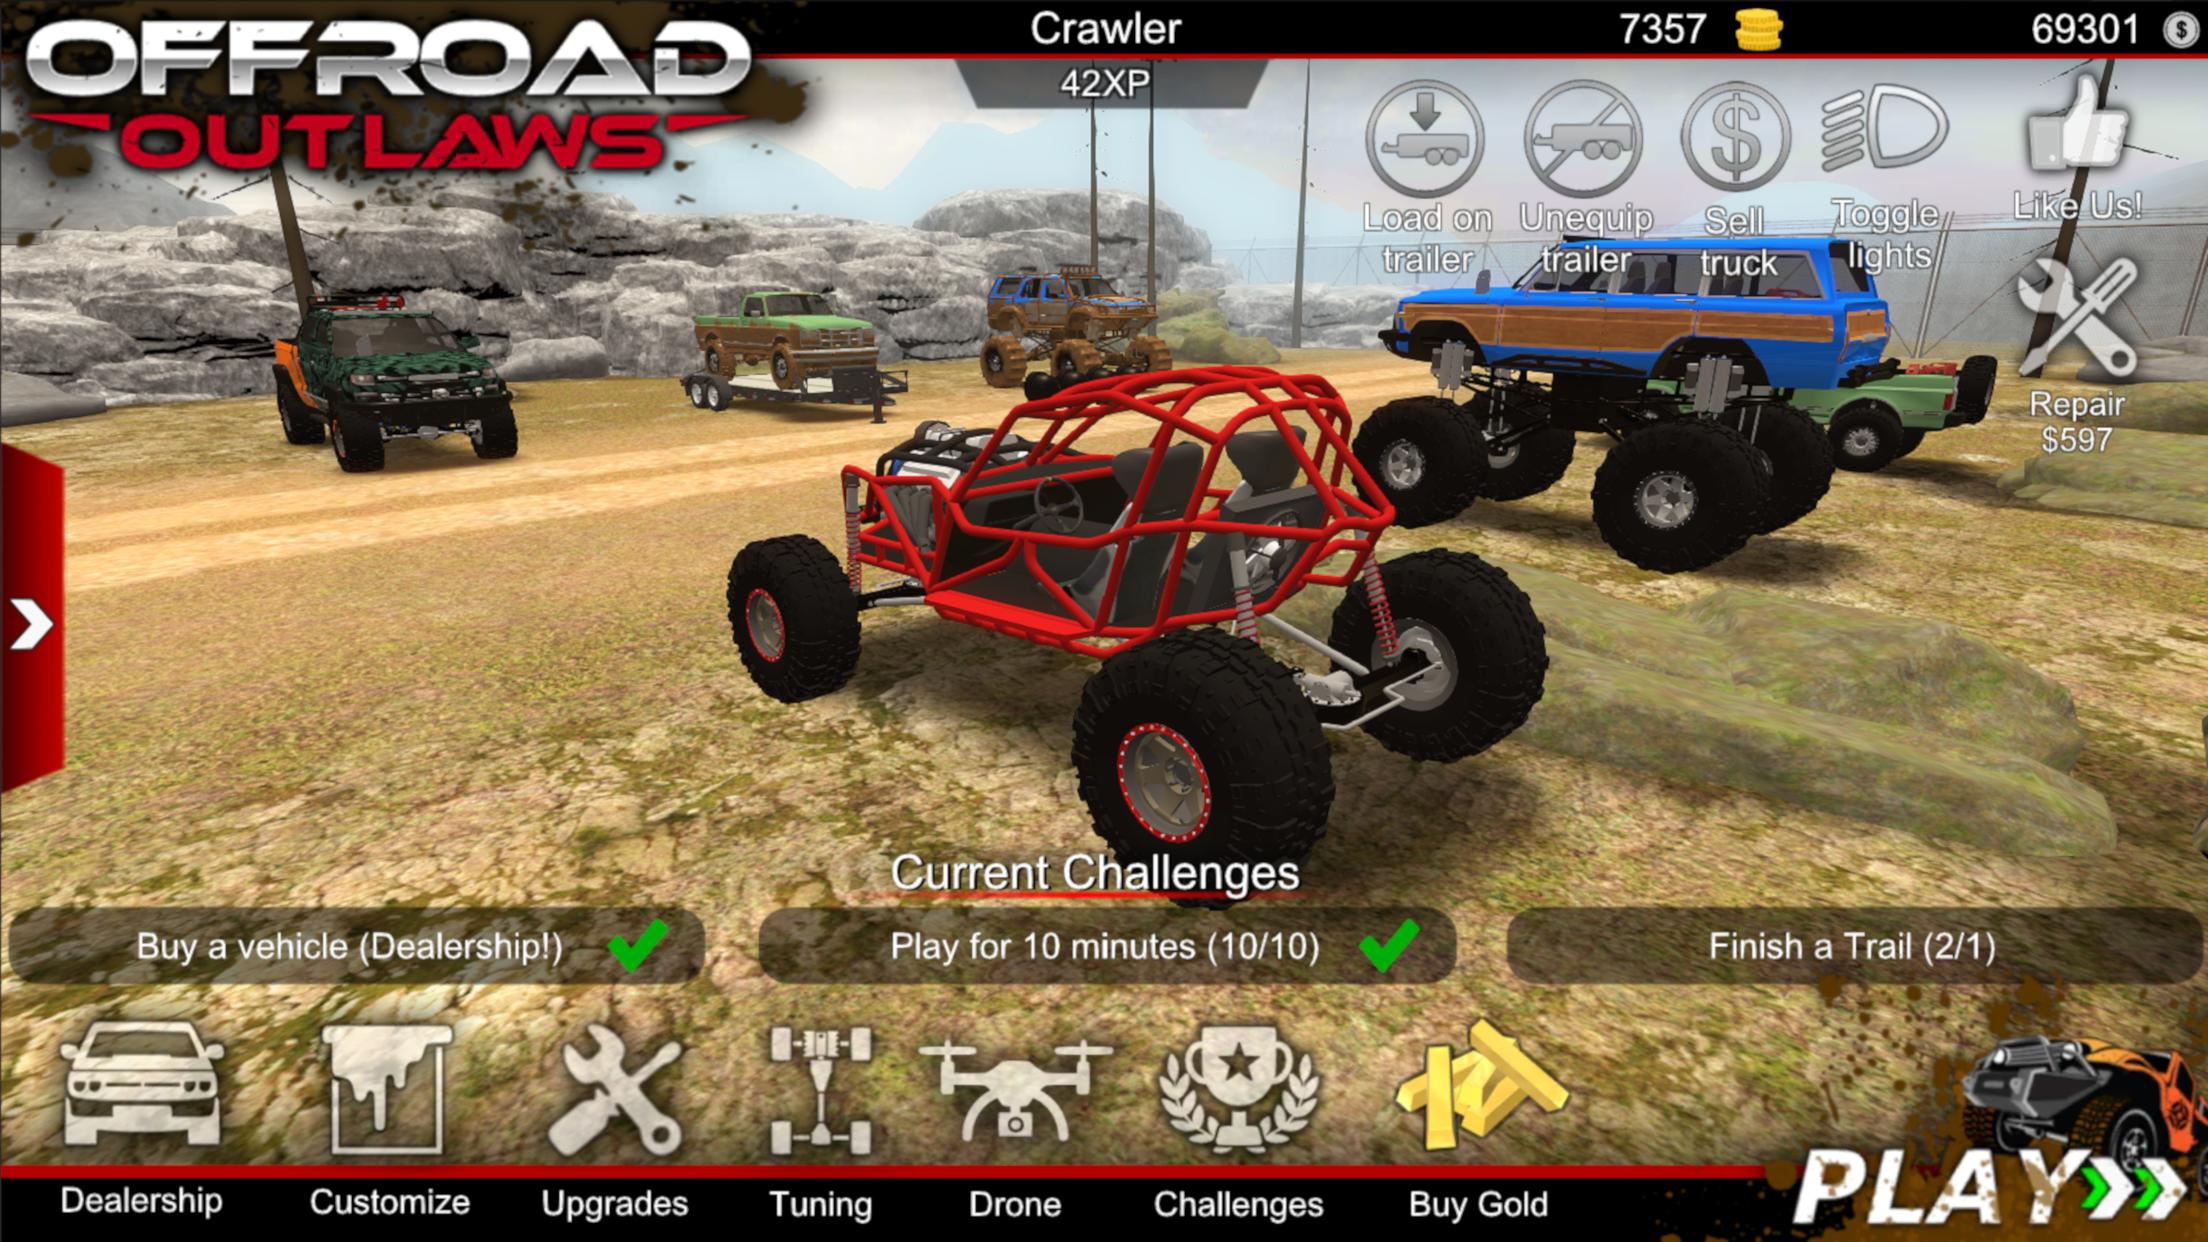 Offroad Outlaws Mod APK Download